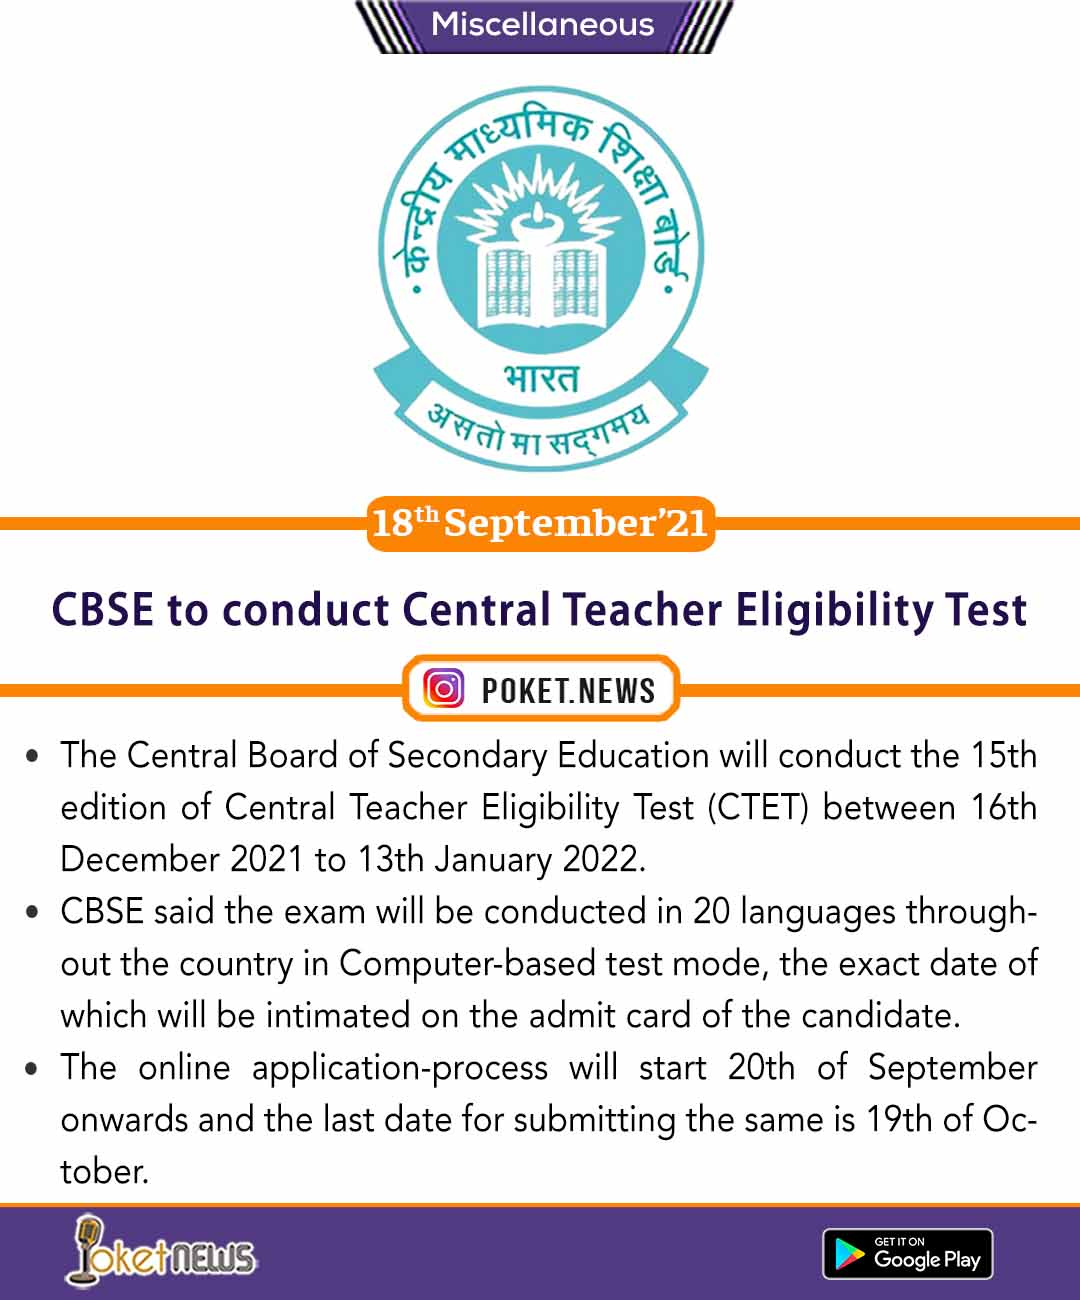 CBSE to conduct Central Teacher Eligibility Test